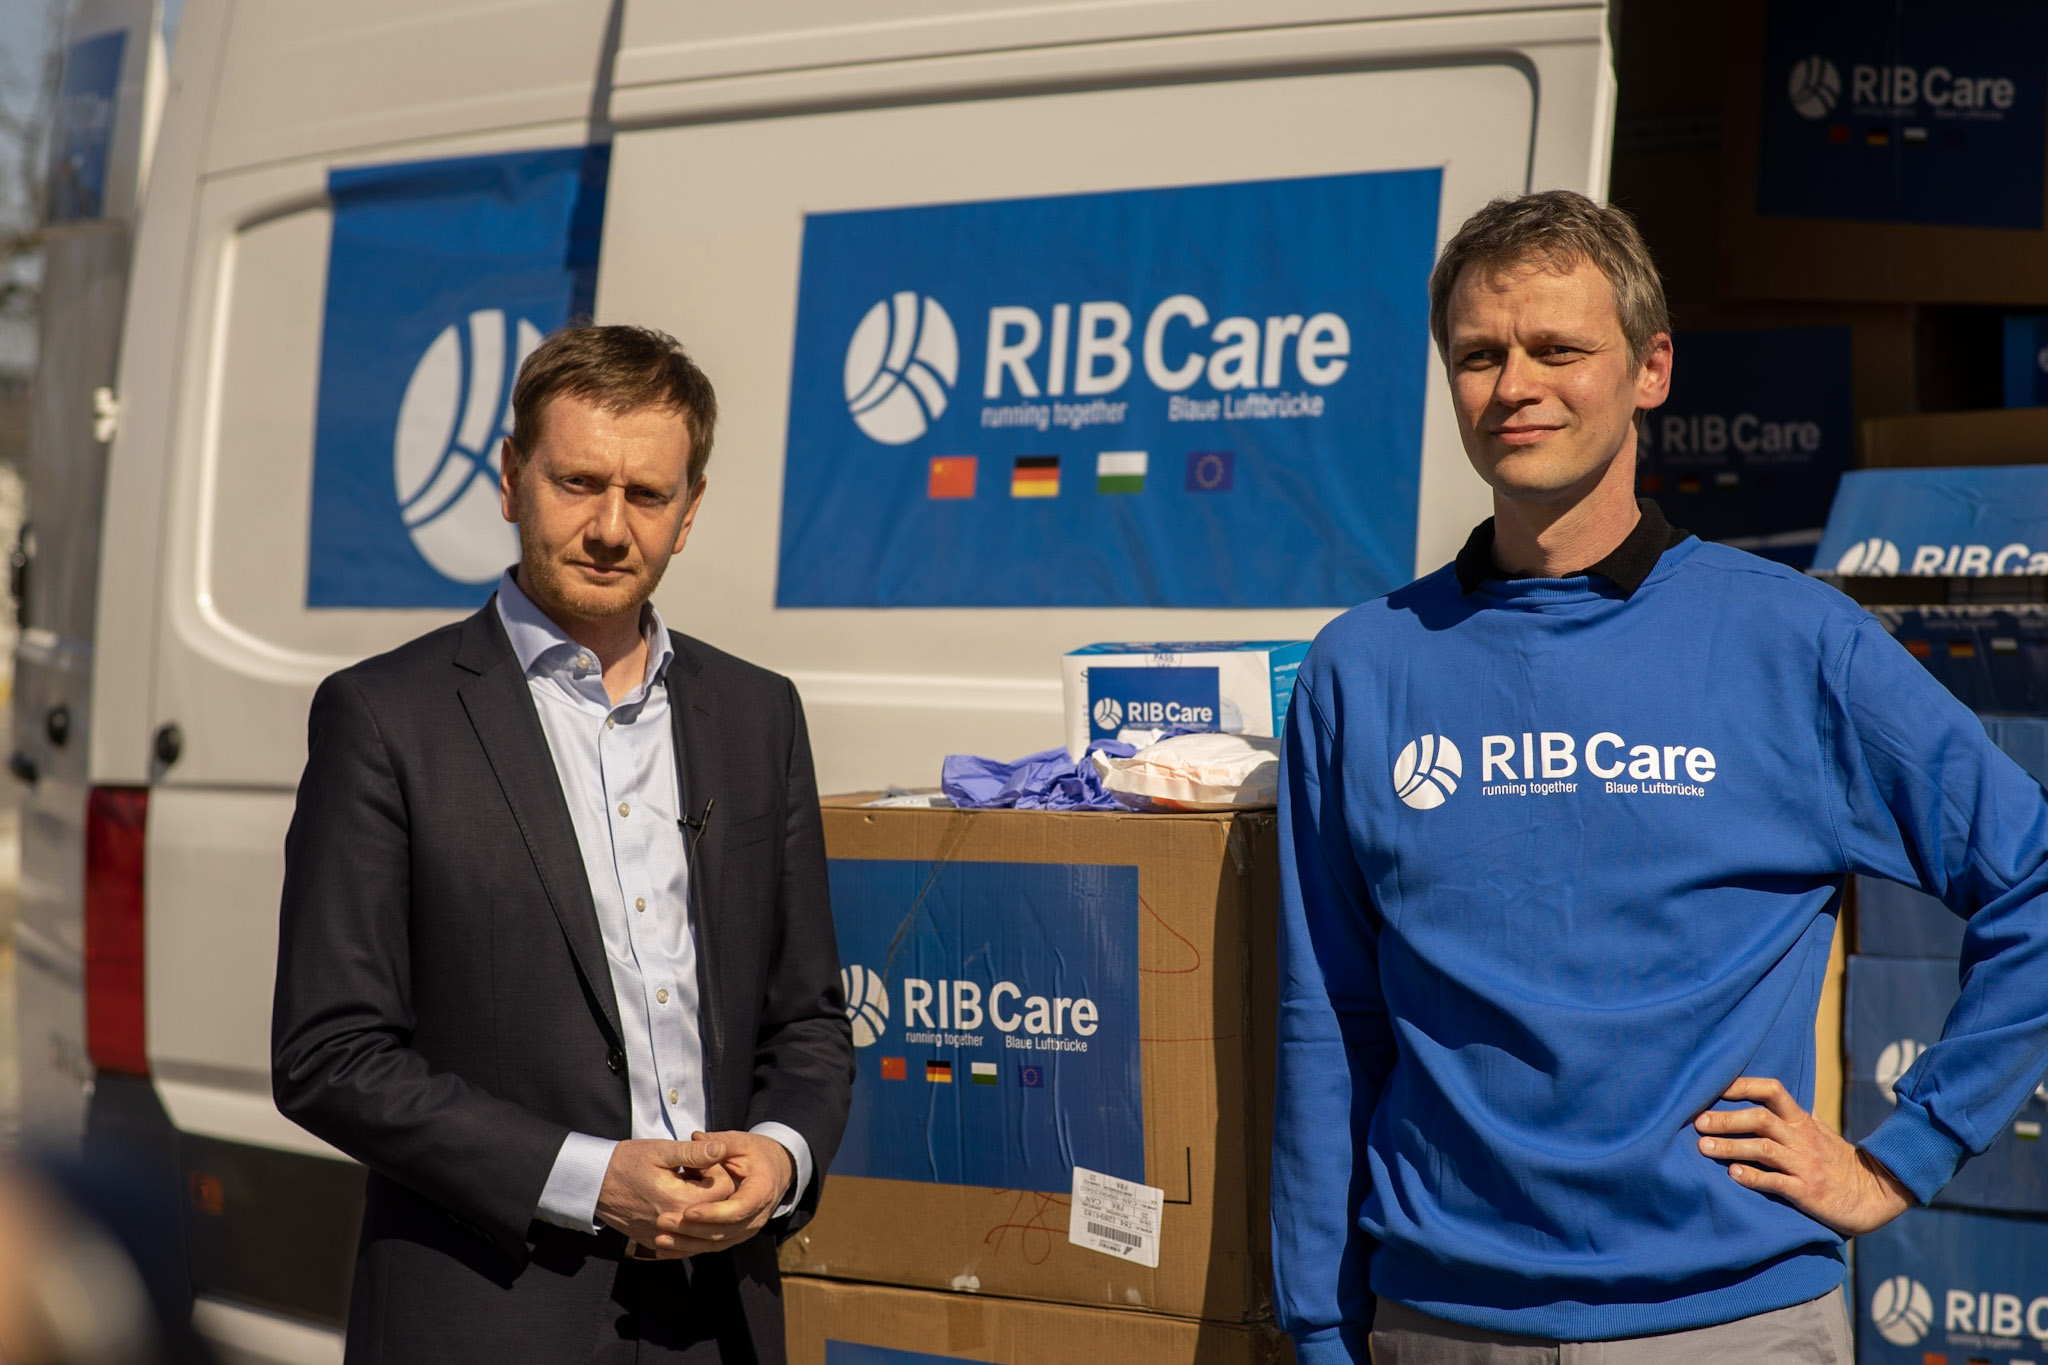 Saxony's Prime Minister Michael Kretschmer (l.) and Executive Board/COO of RIB Software, Michael Woitag.